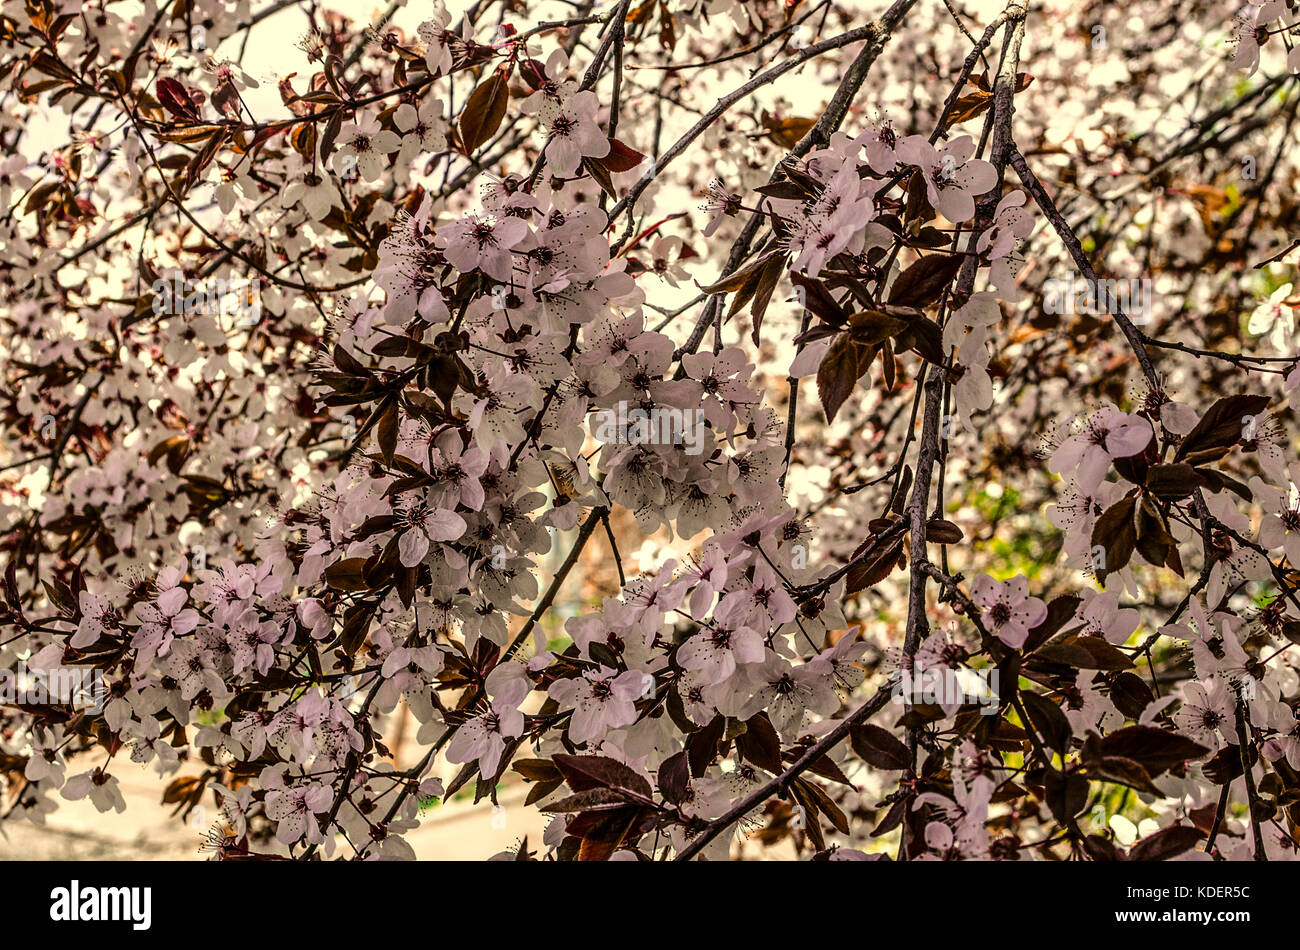 Flowering Branches Of A Plum Tree With Burgundy Leaves Stock Photo